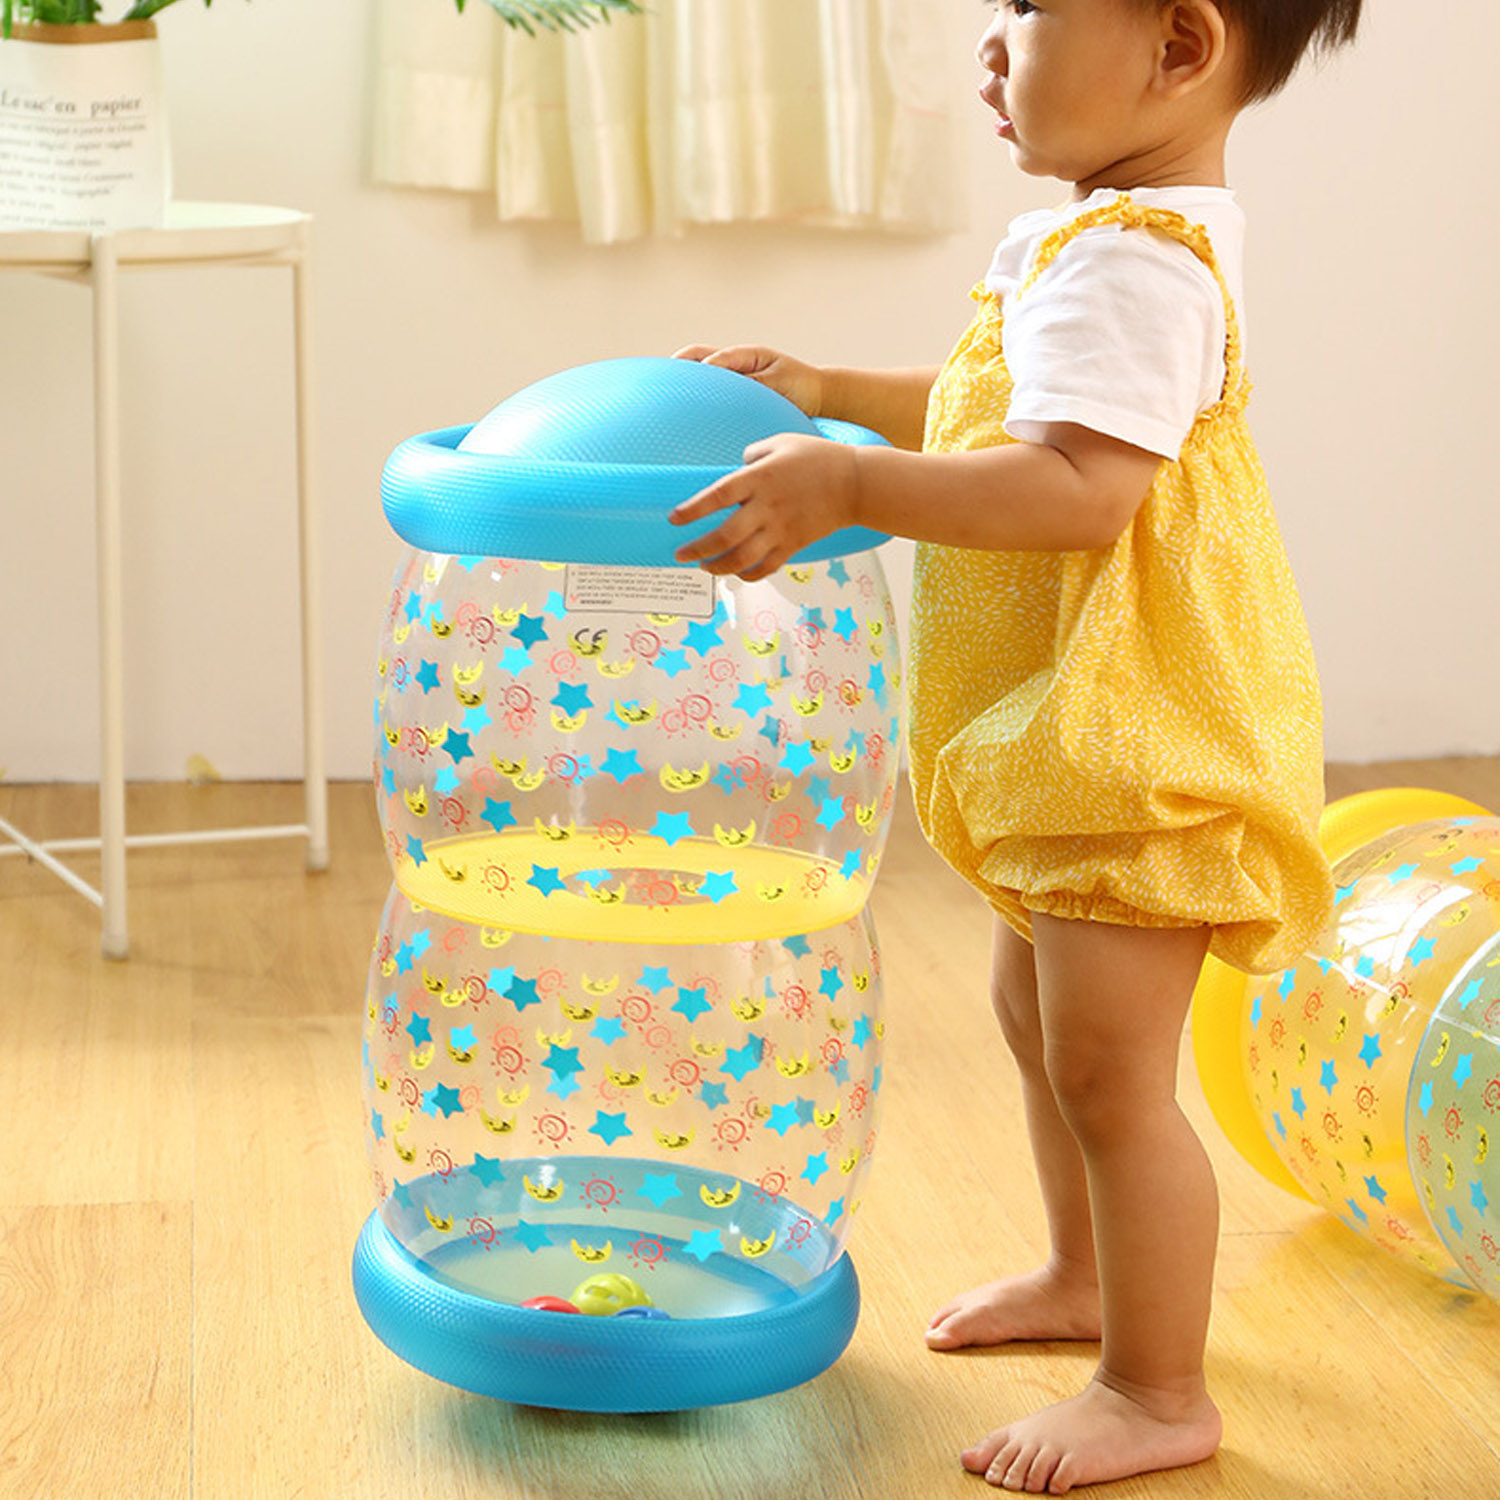 Funny Inflatable Crawling Standing Exercise Training Roller With Bell Ball For 6-36 Month Newborn Toddlers Boys Girls